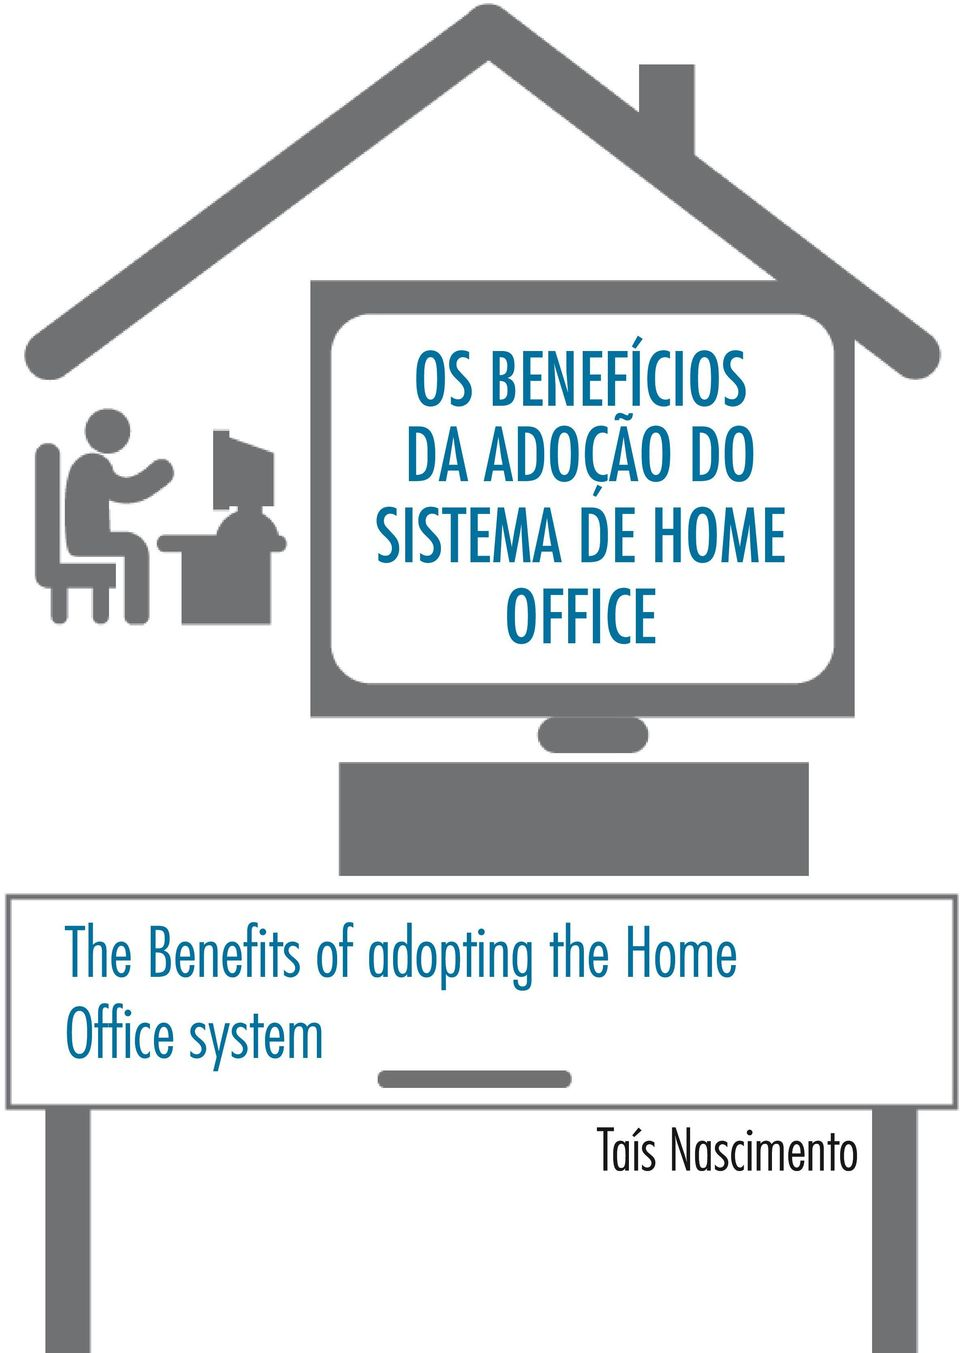 DE HOME OFFICE The Benefits of adopting